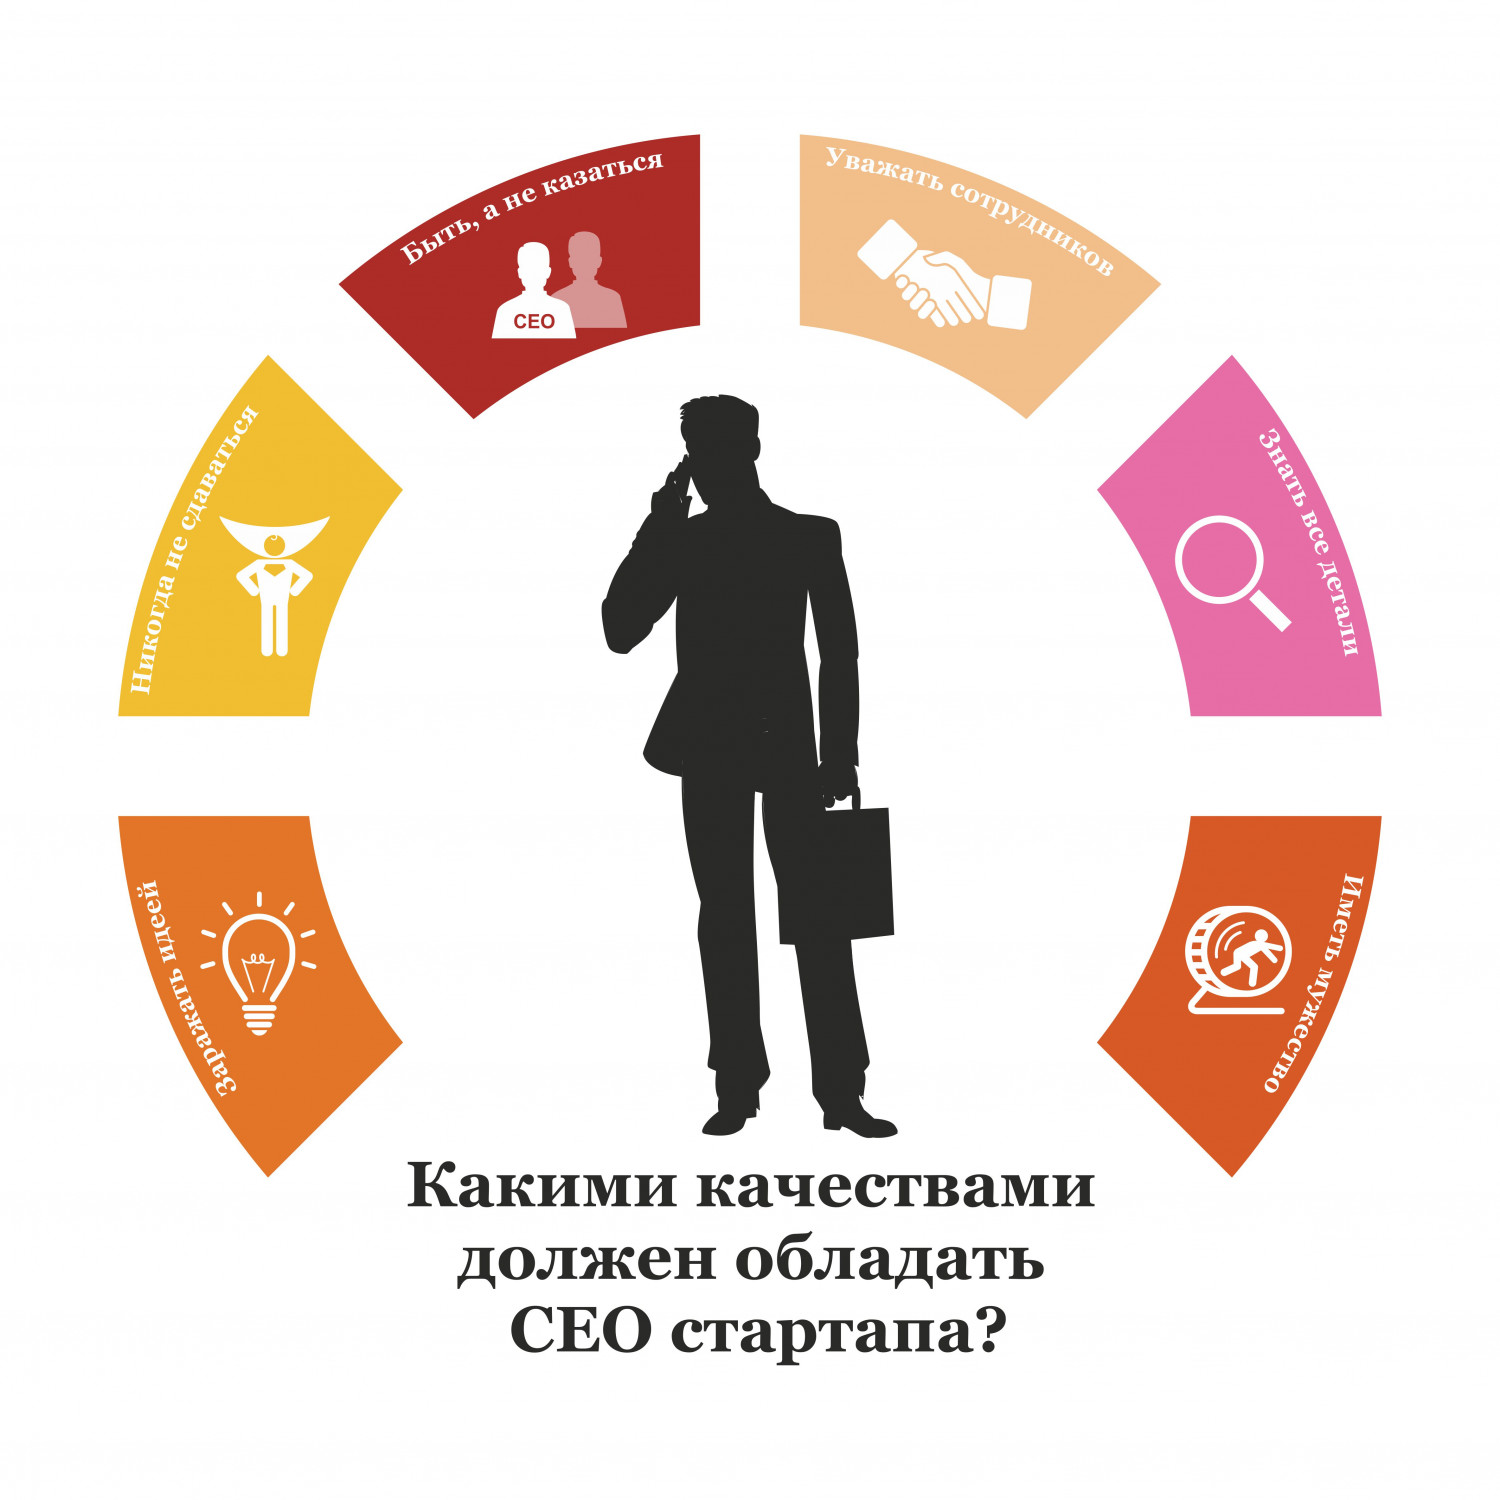 Qualities of CEO Infographic